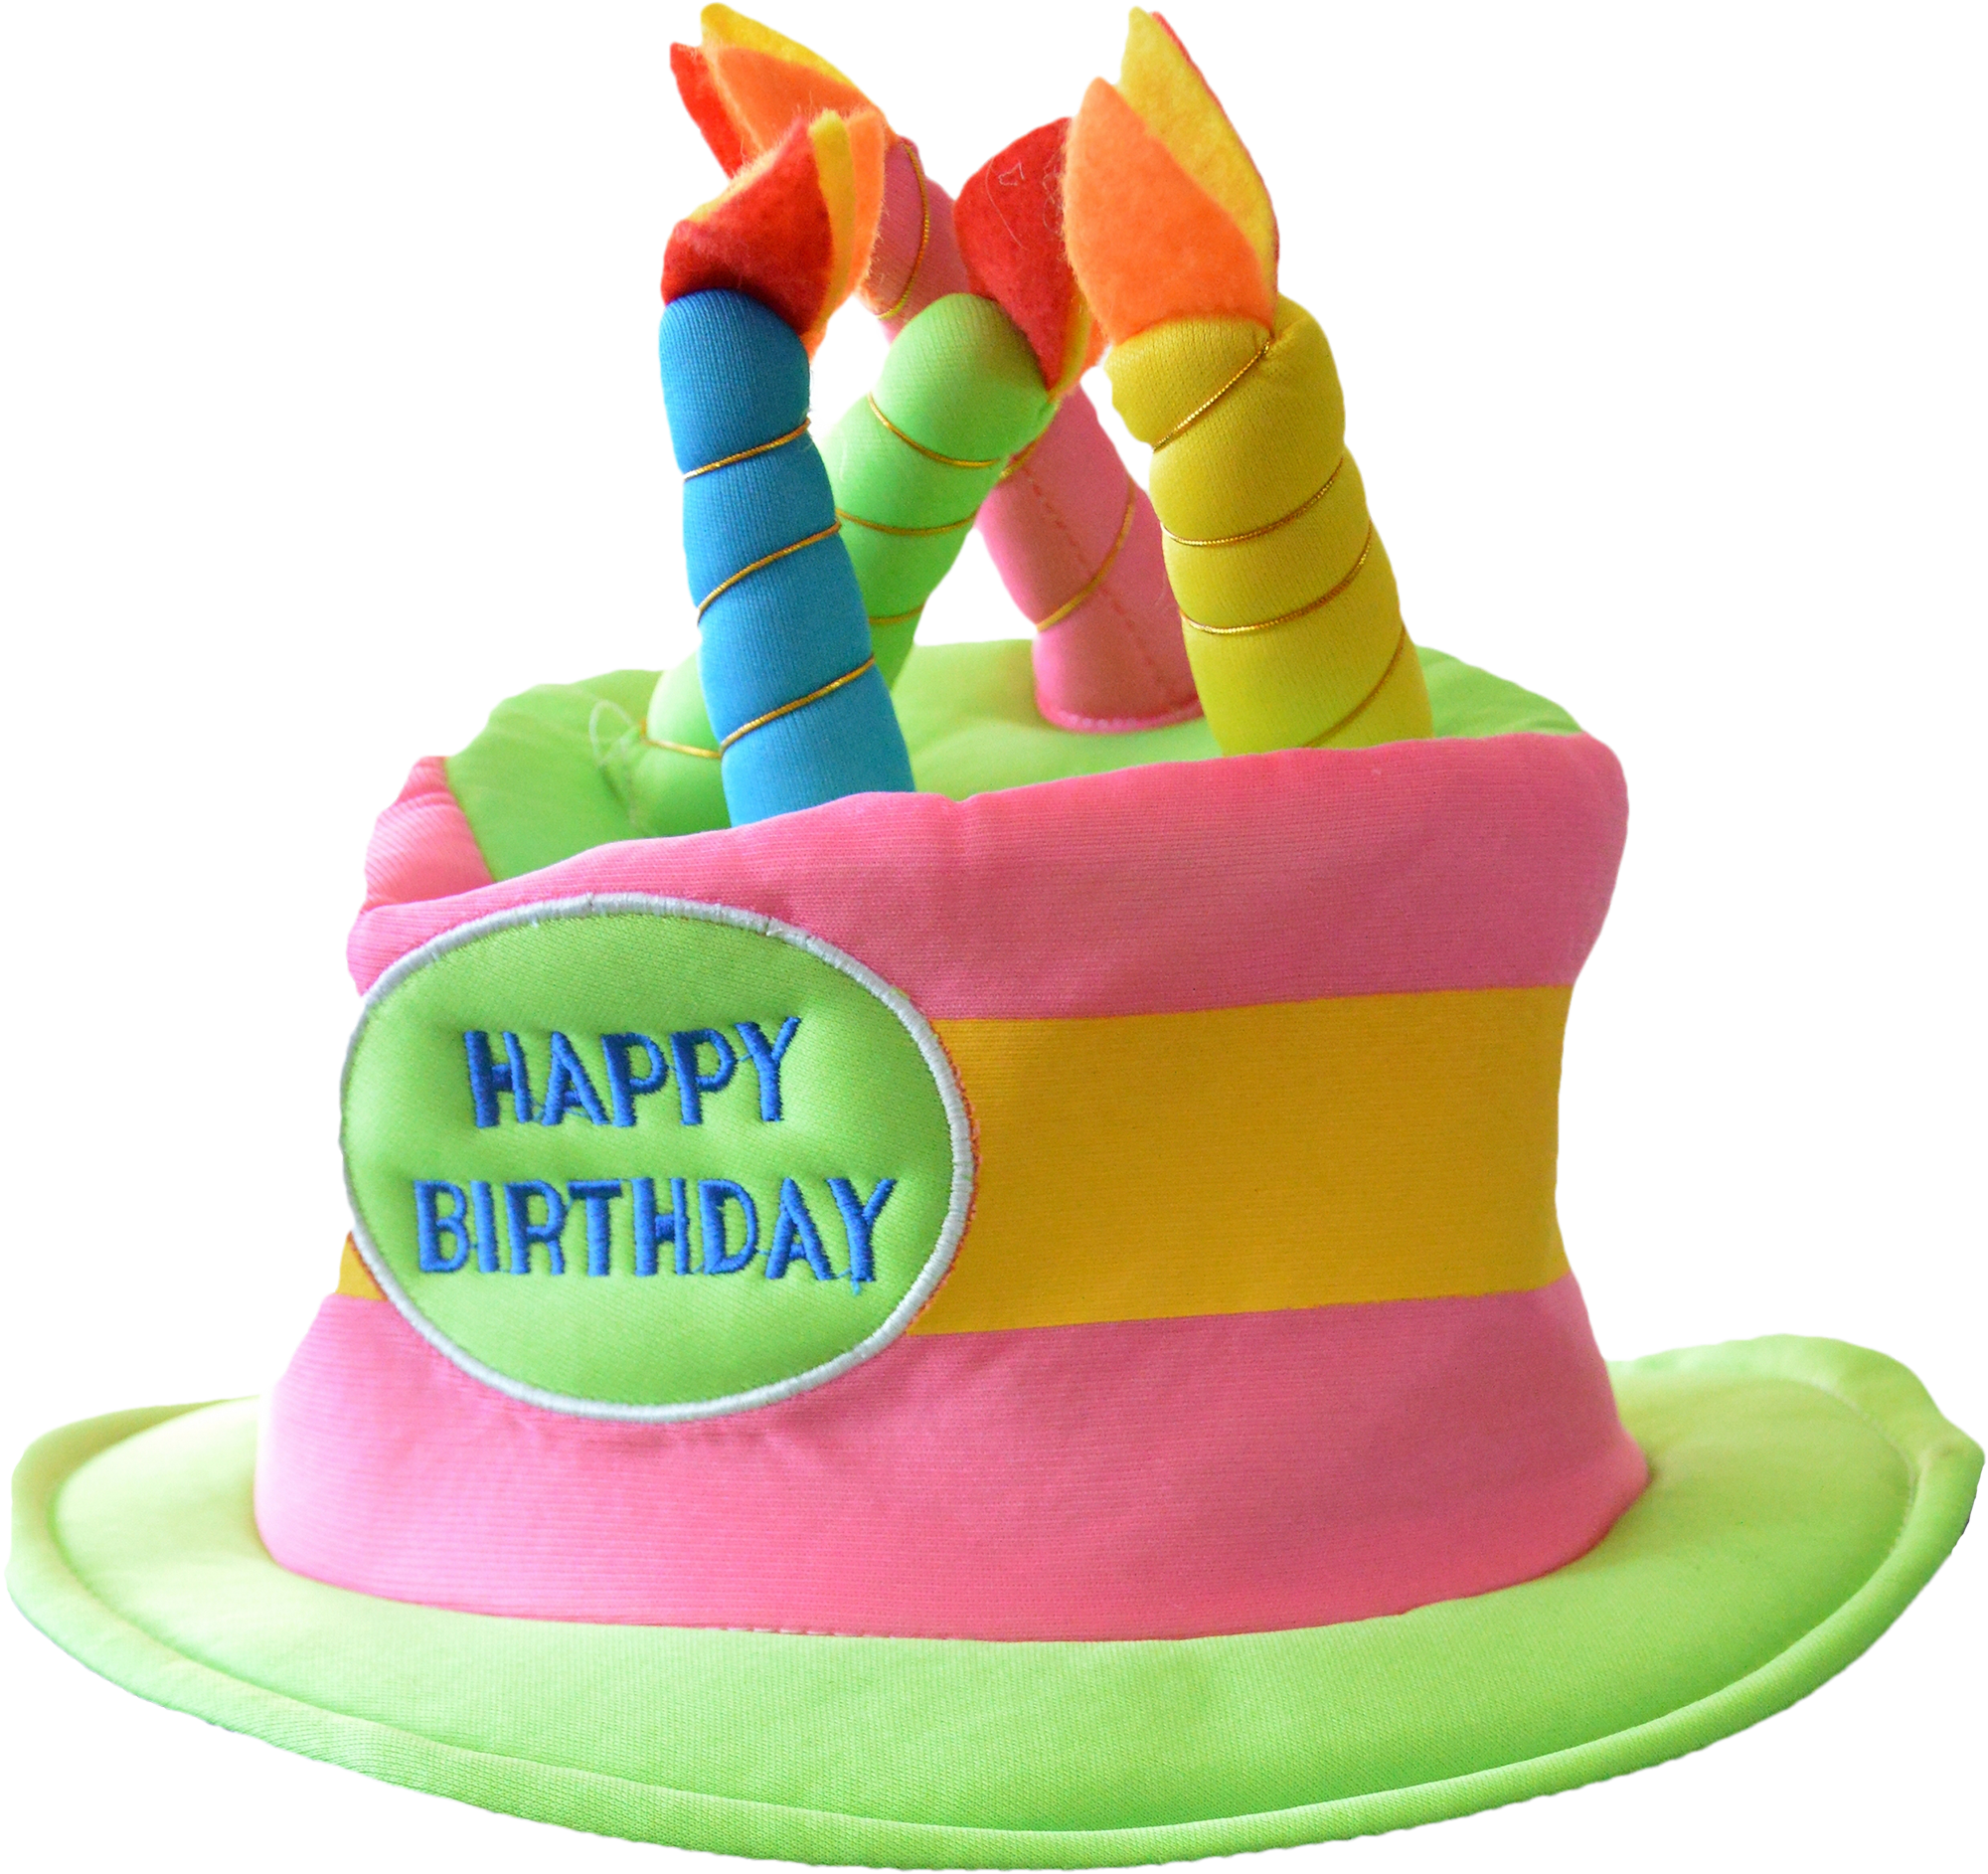 Happy Birthday Hat Png image #33089